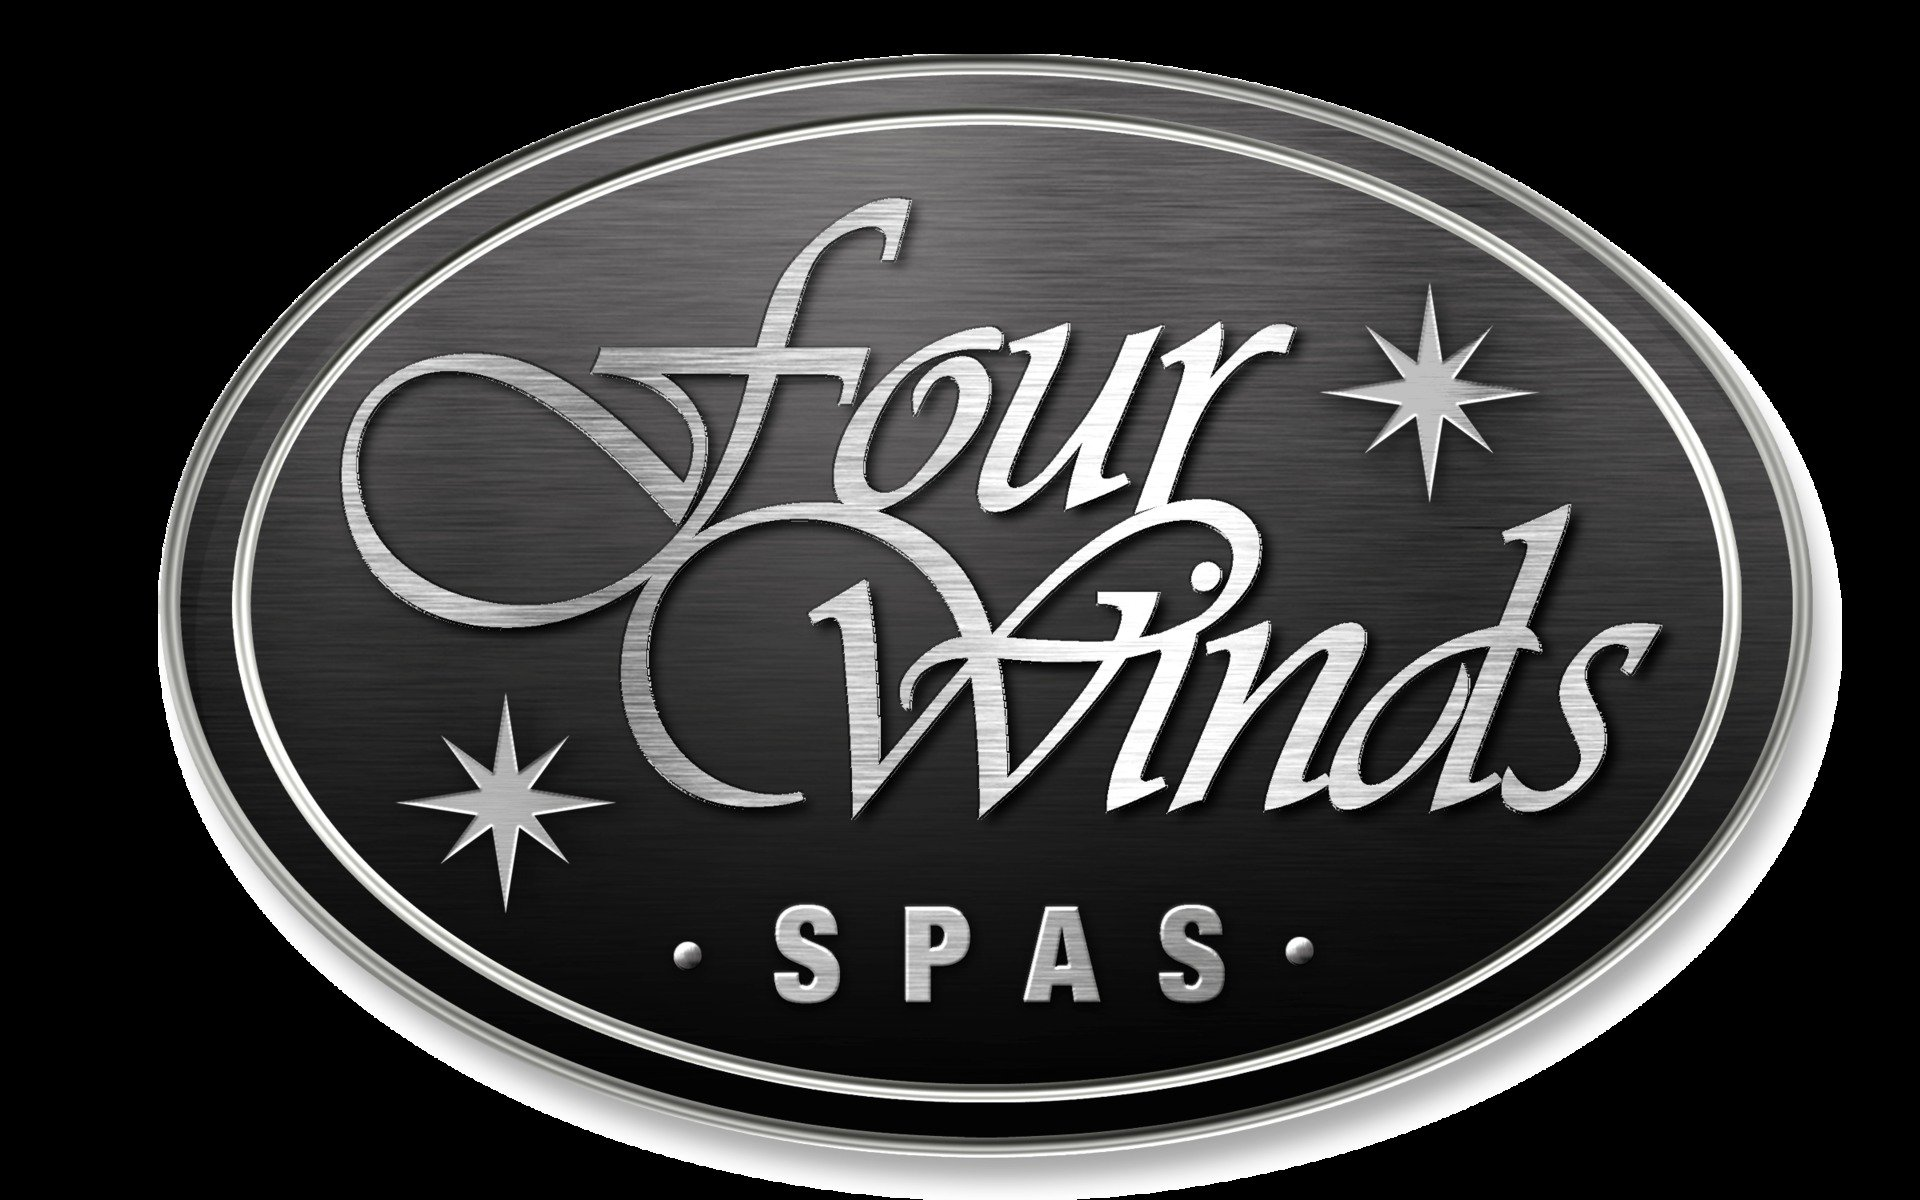 Hot Tubs And Swim Spas Four Winds Spa Nashville Tn